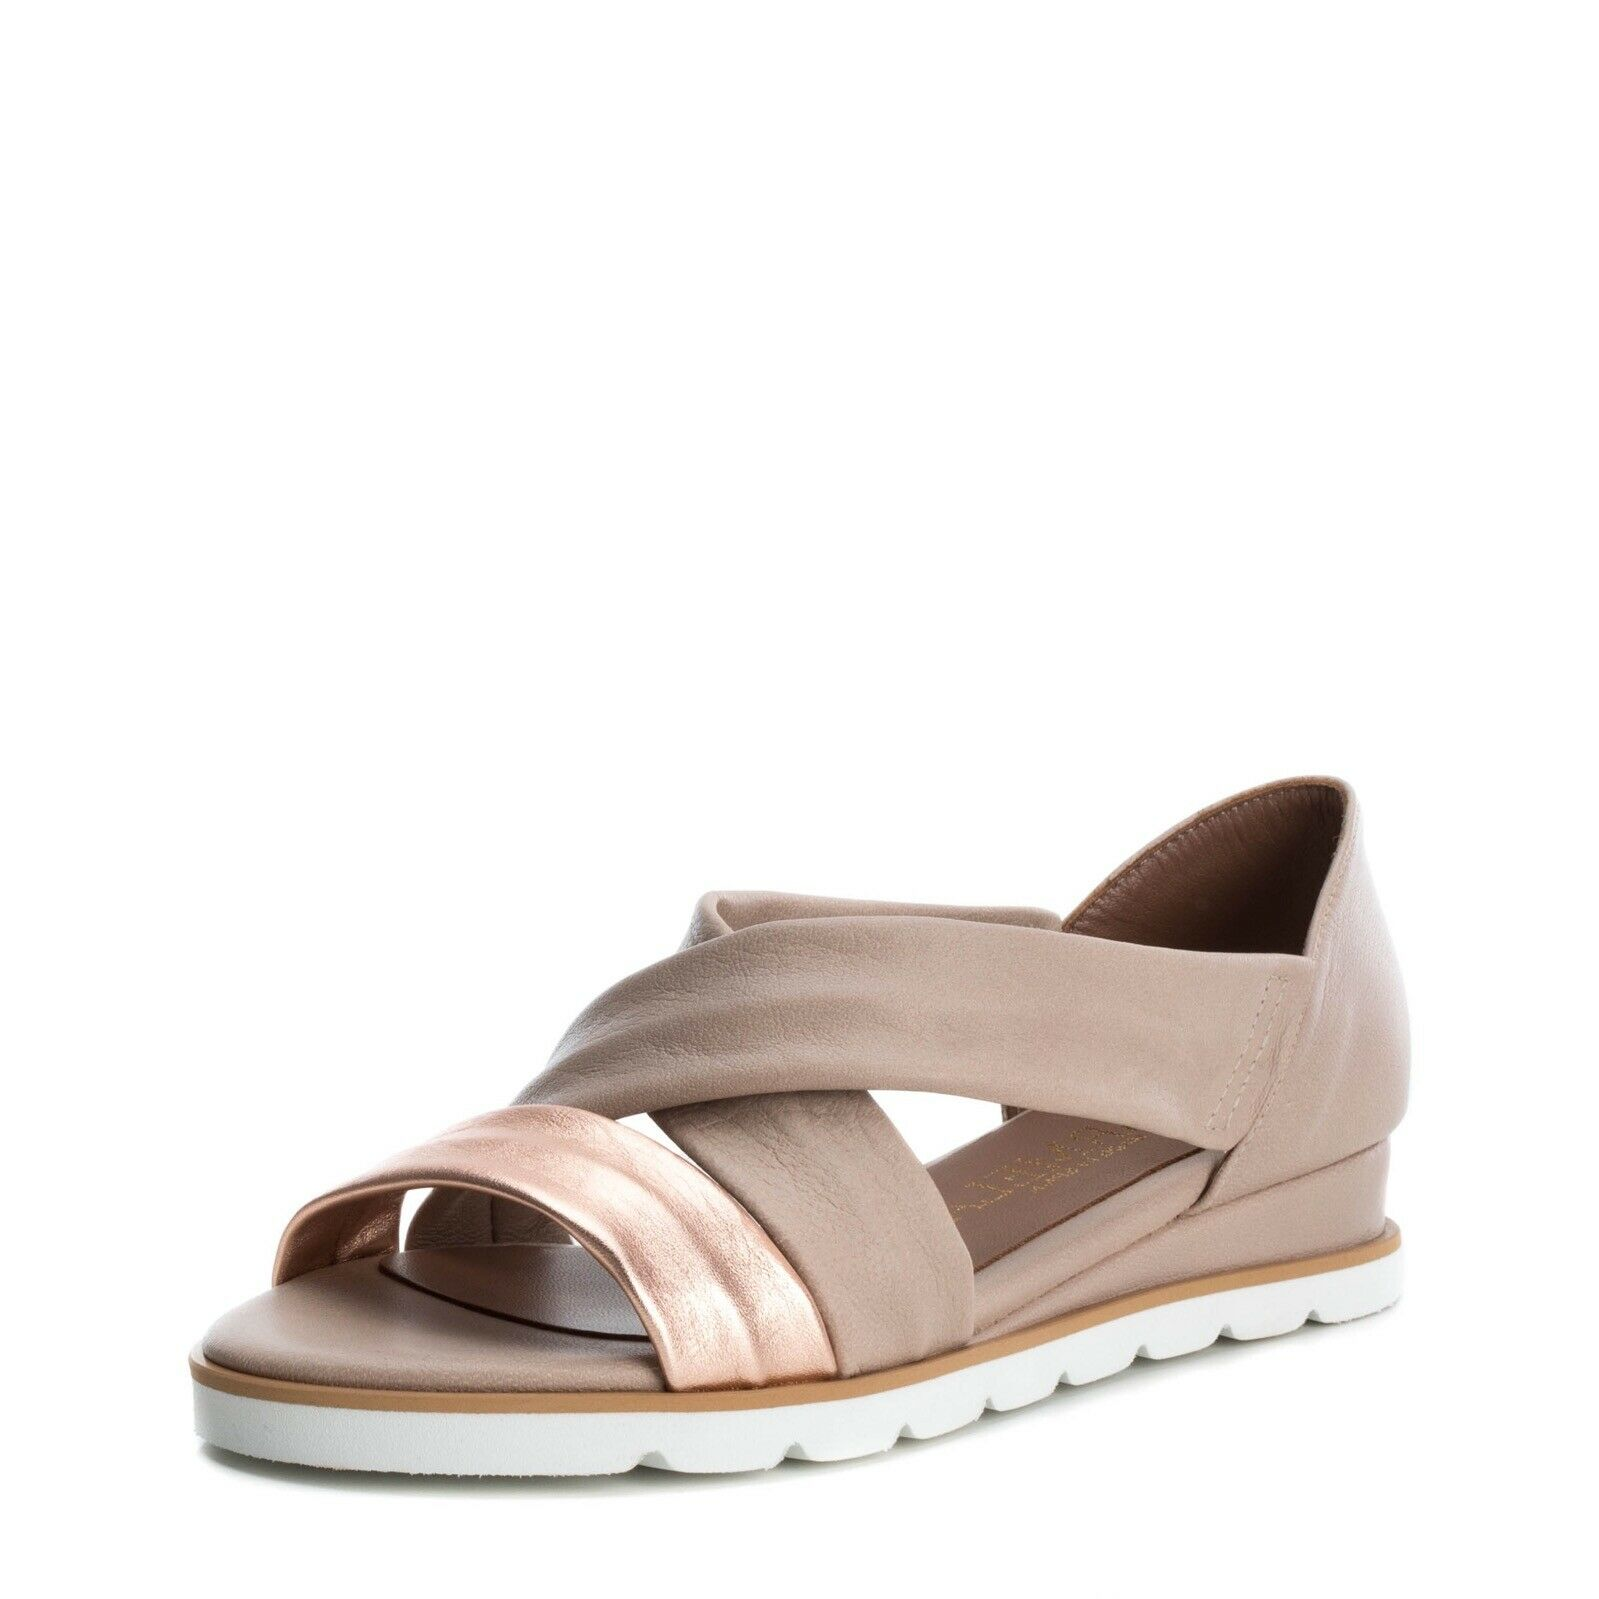 CARMELA by XTI chaussures 66751 beige talons sandale wedge sandal